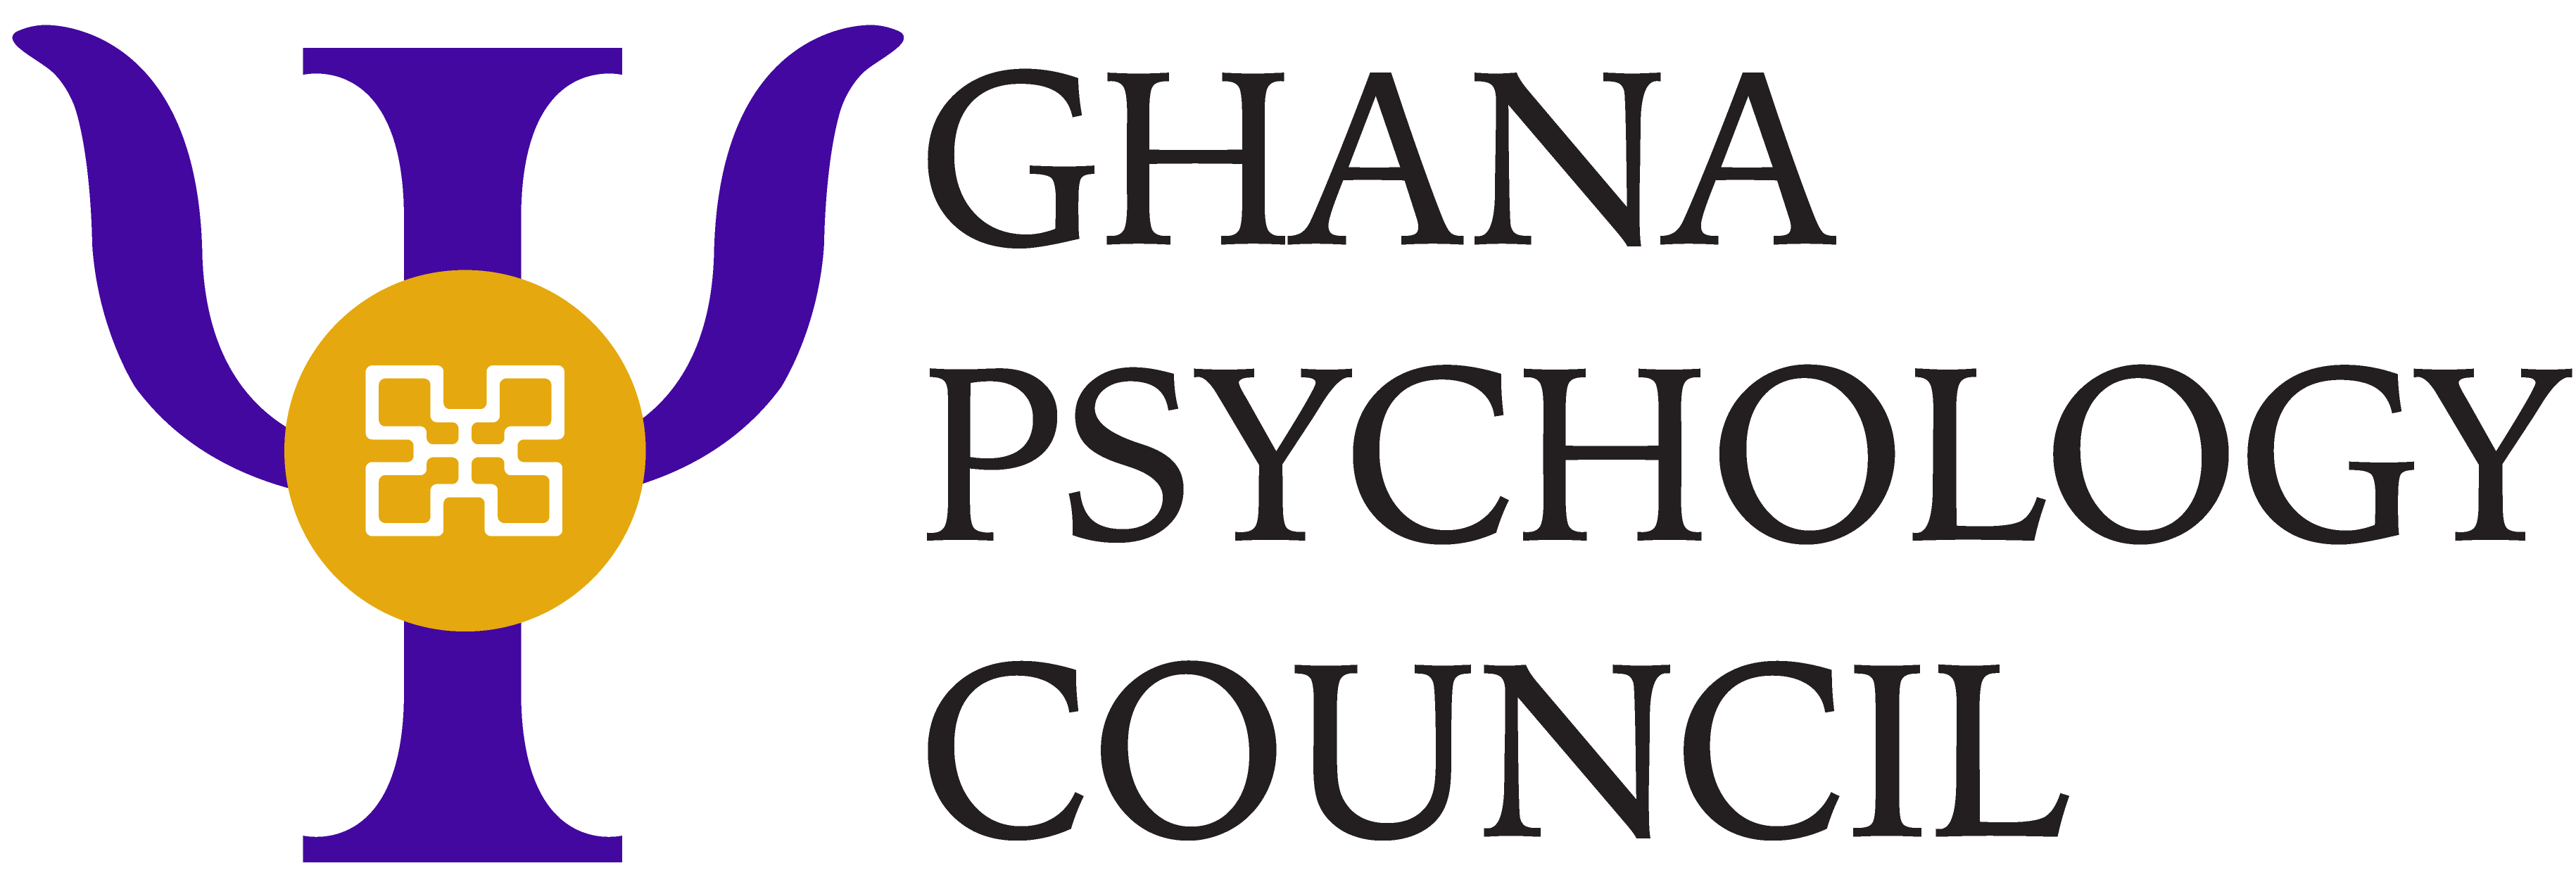 Ghana Psychology Council